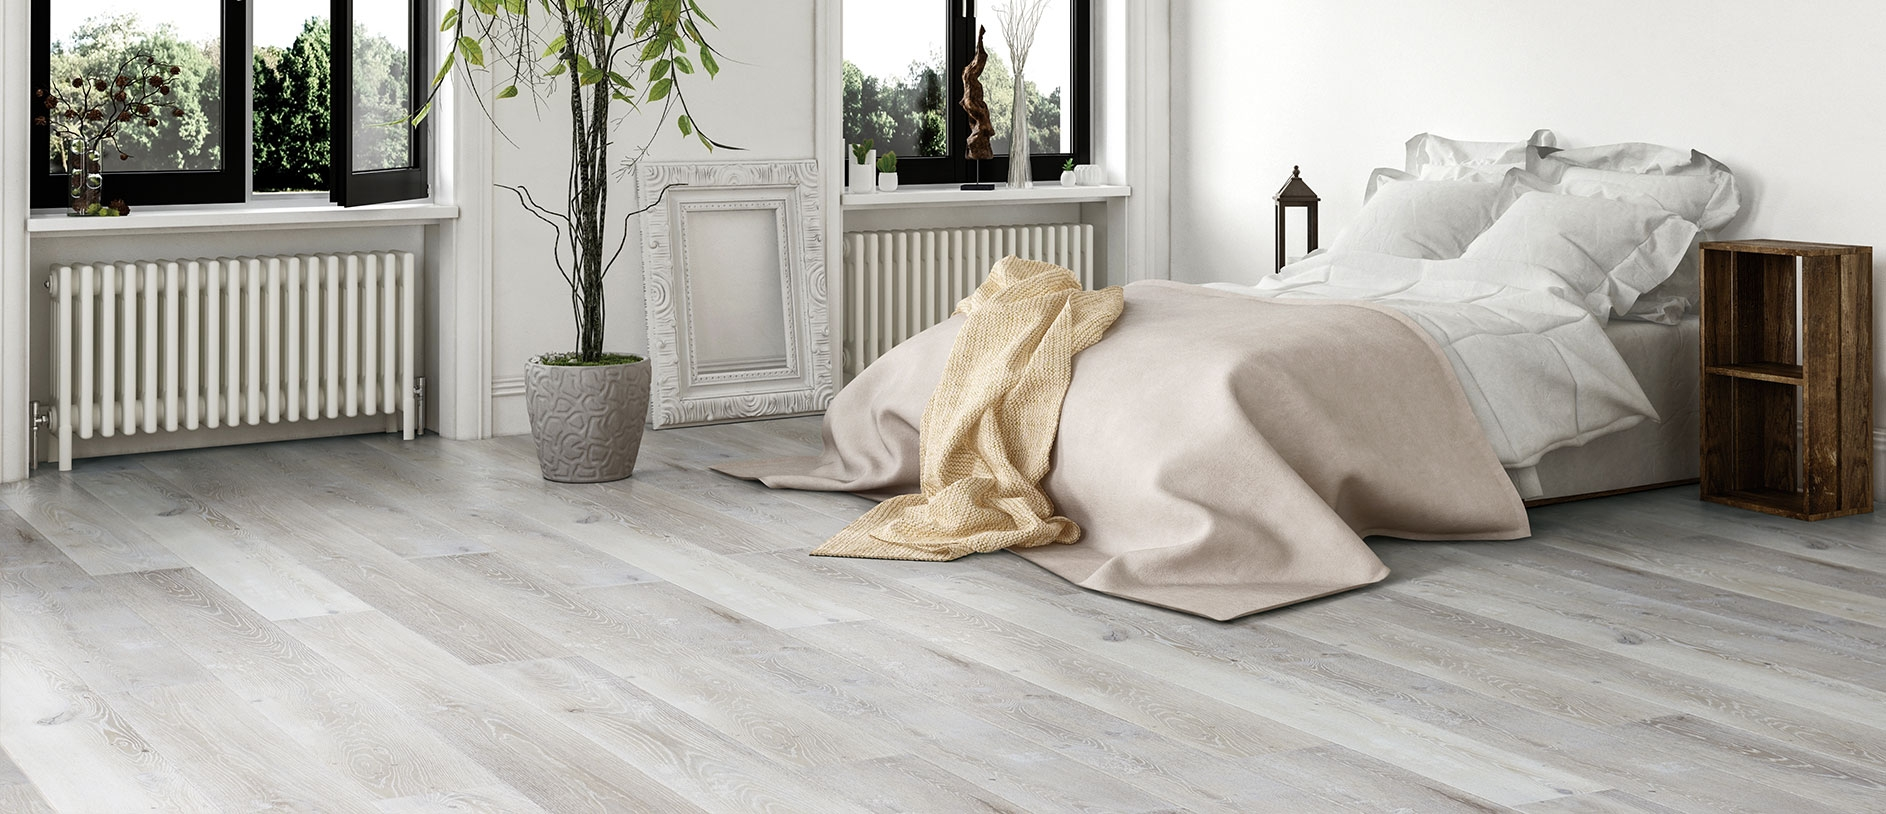 Luxury Wood Flooring